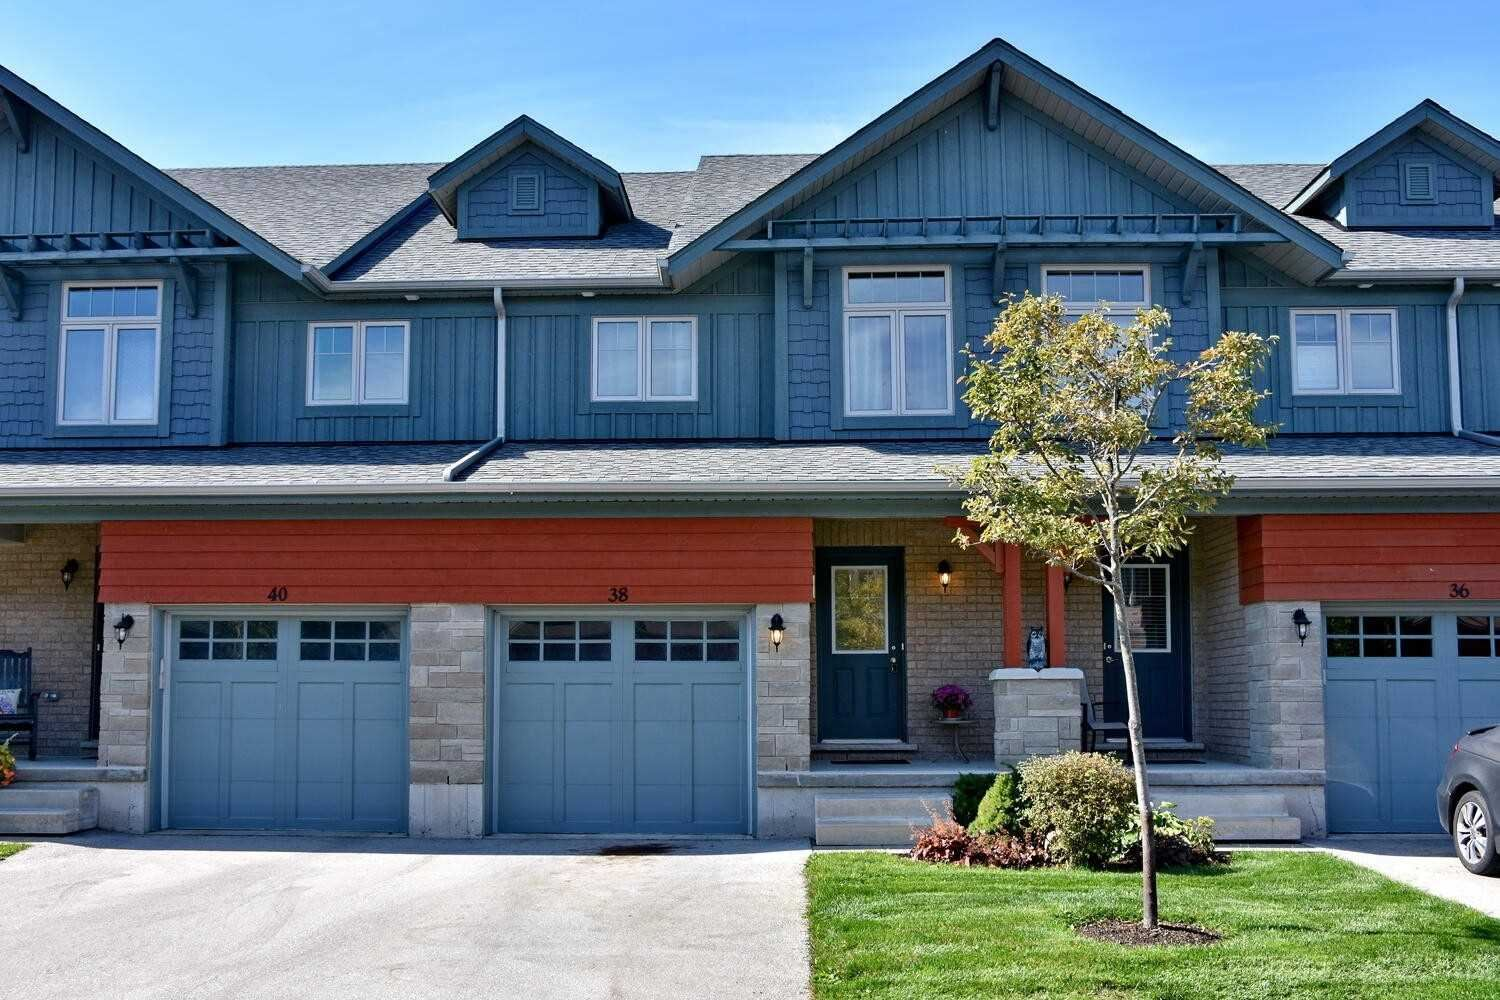 38 Conservation Way, Collingwood, ON L9Y 0G9 - MLS#: S5391271